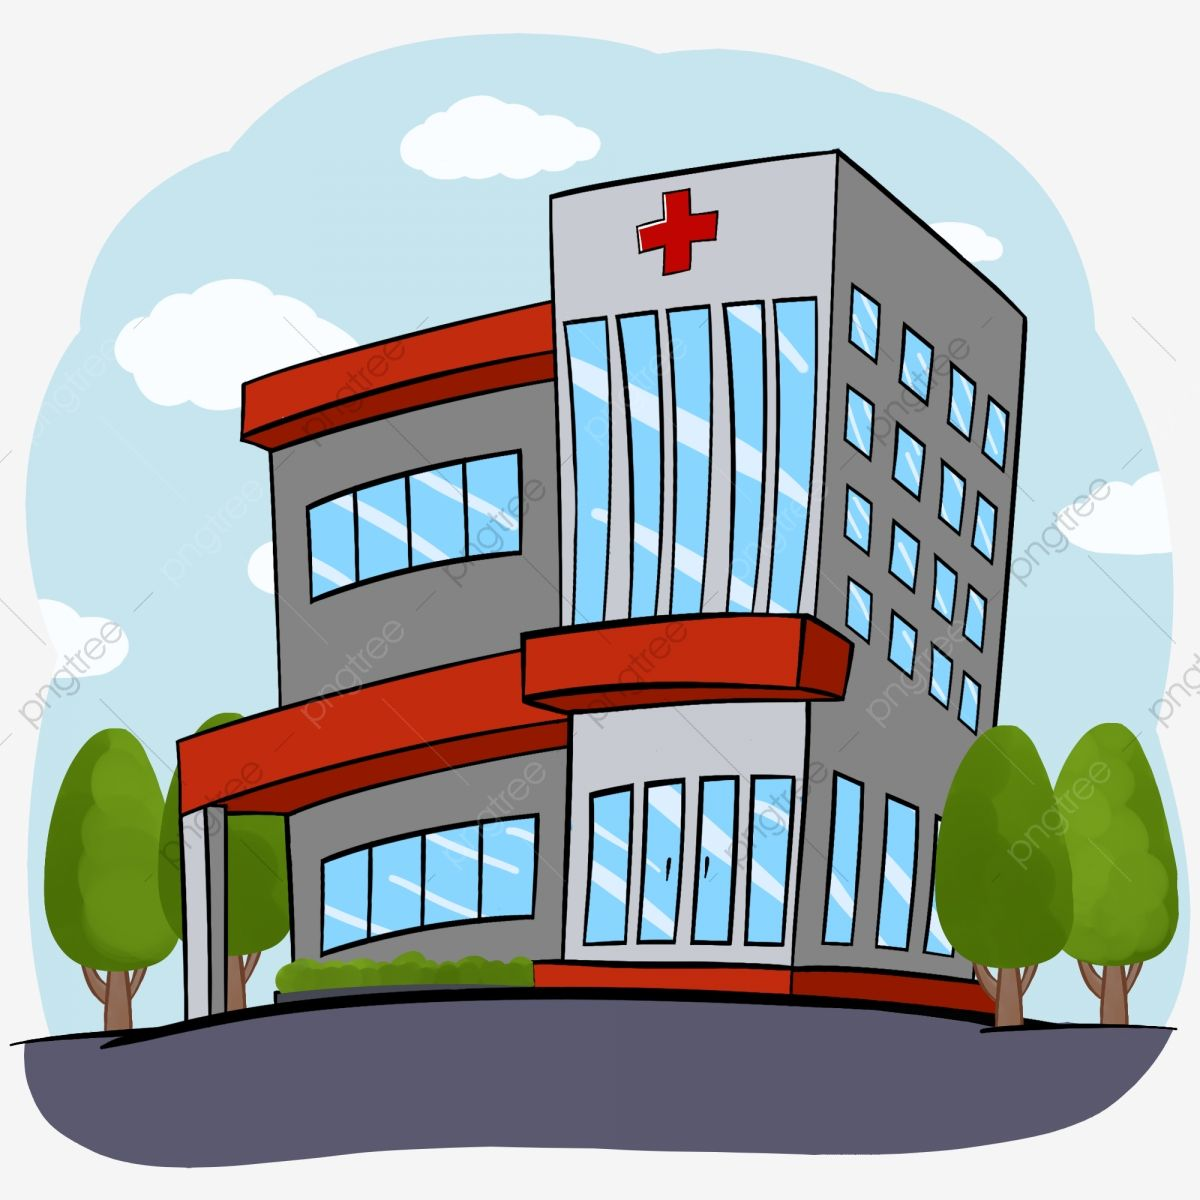 Medical Hospital Building Hand Drawn Can Be Commercial Cartoon Element Medical Hospital Hand Painted Hosp Hospital Cartoon How To Draw Hands Cartoon Clip Art